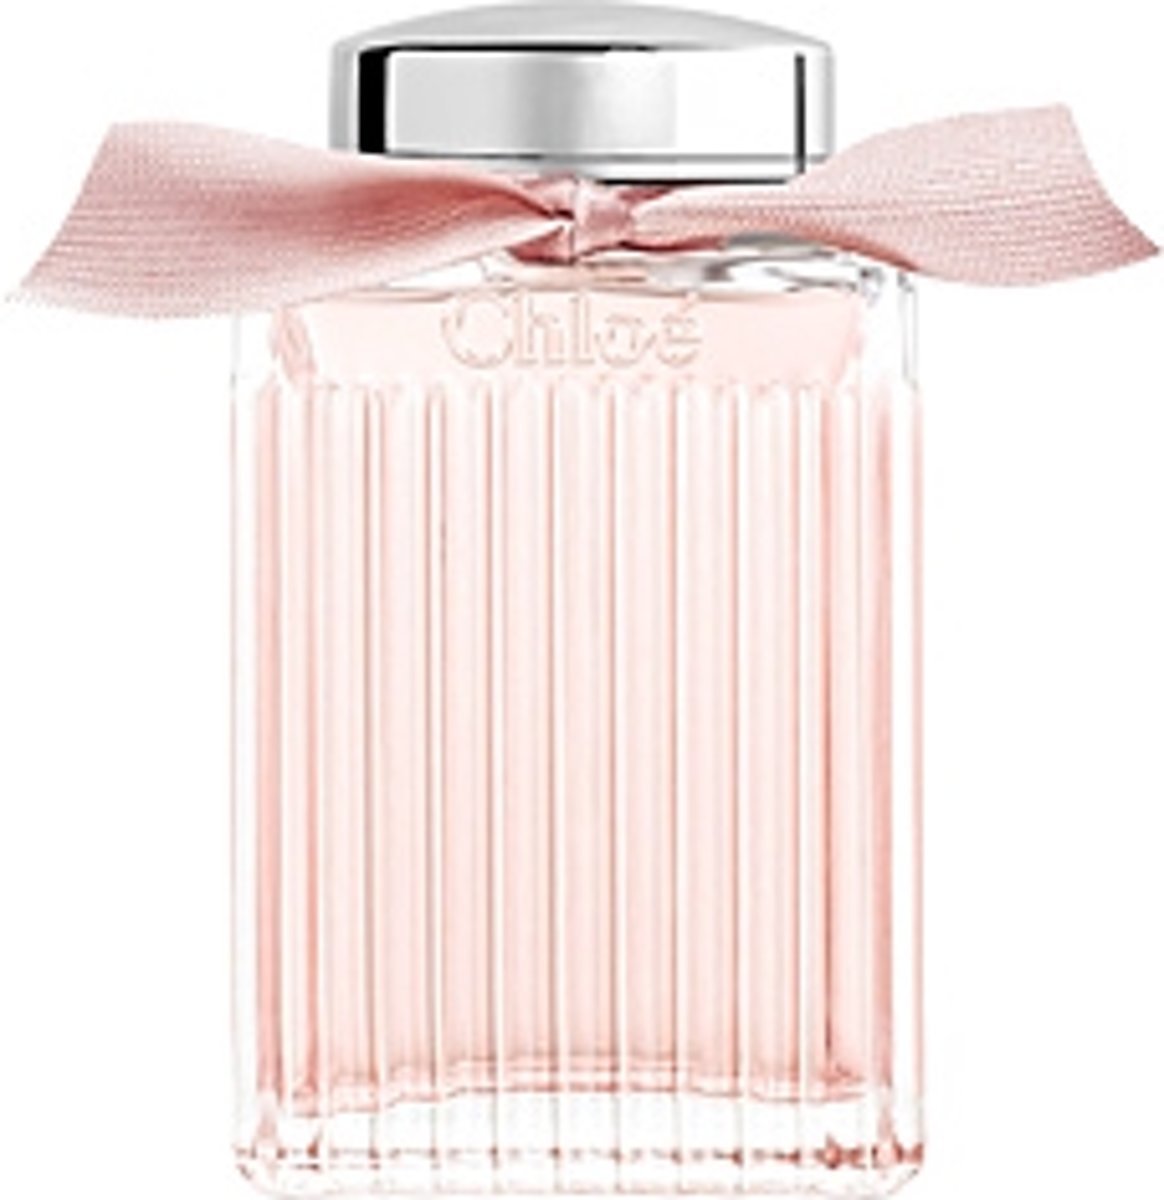 Chloe CHLOÉ SIGNATURE LEAU edt spray 100 ml